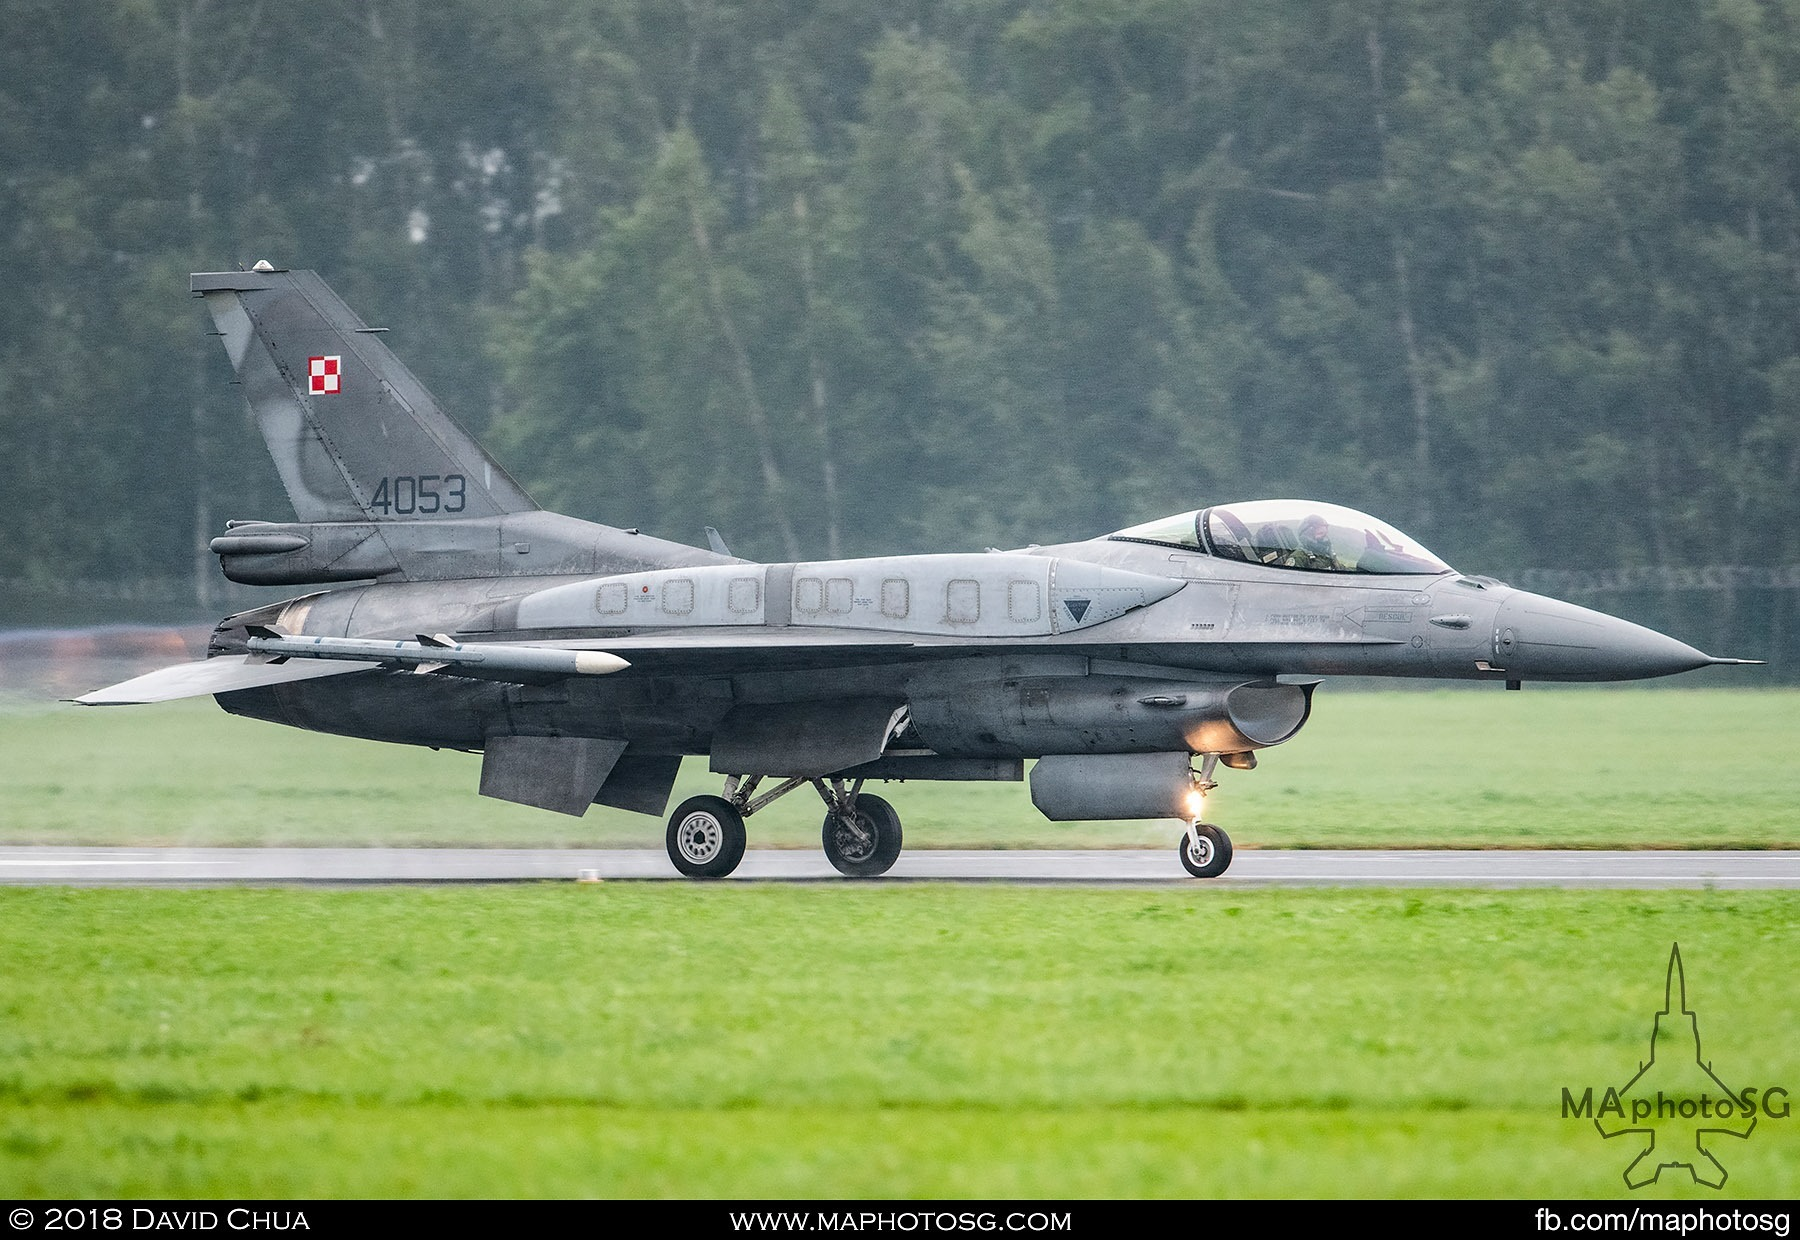 58. Polish Air Force Tiger Demo team F-16C Block 52+ blasts down the runway